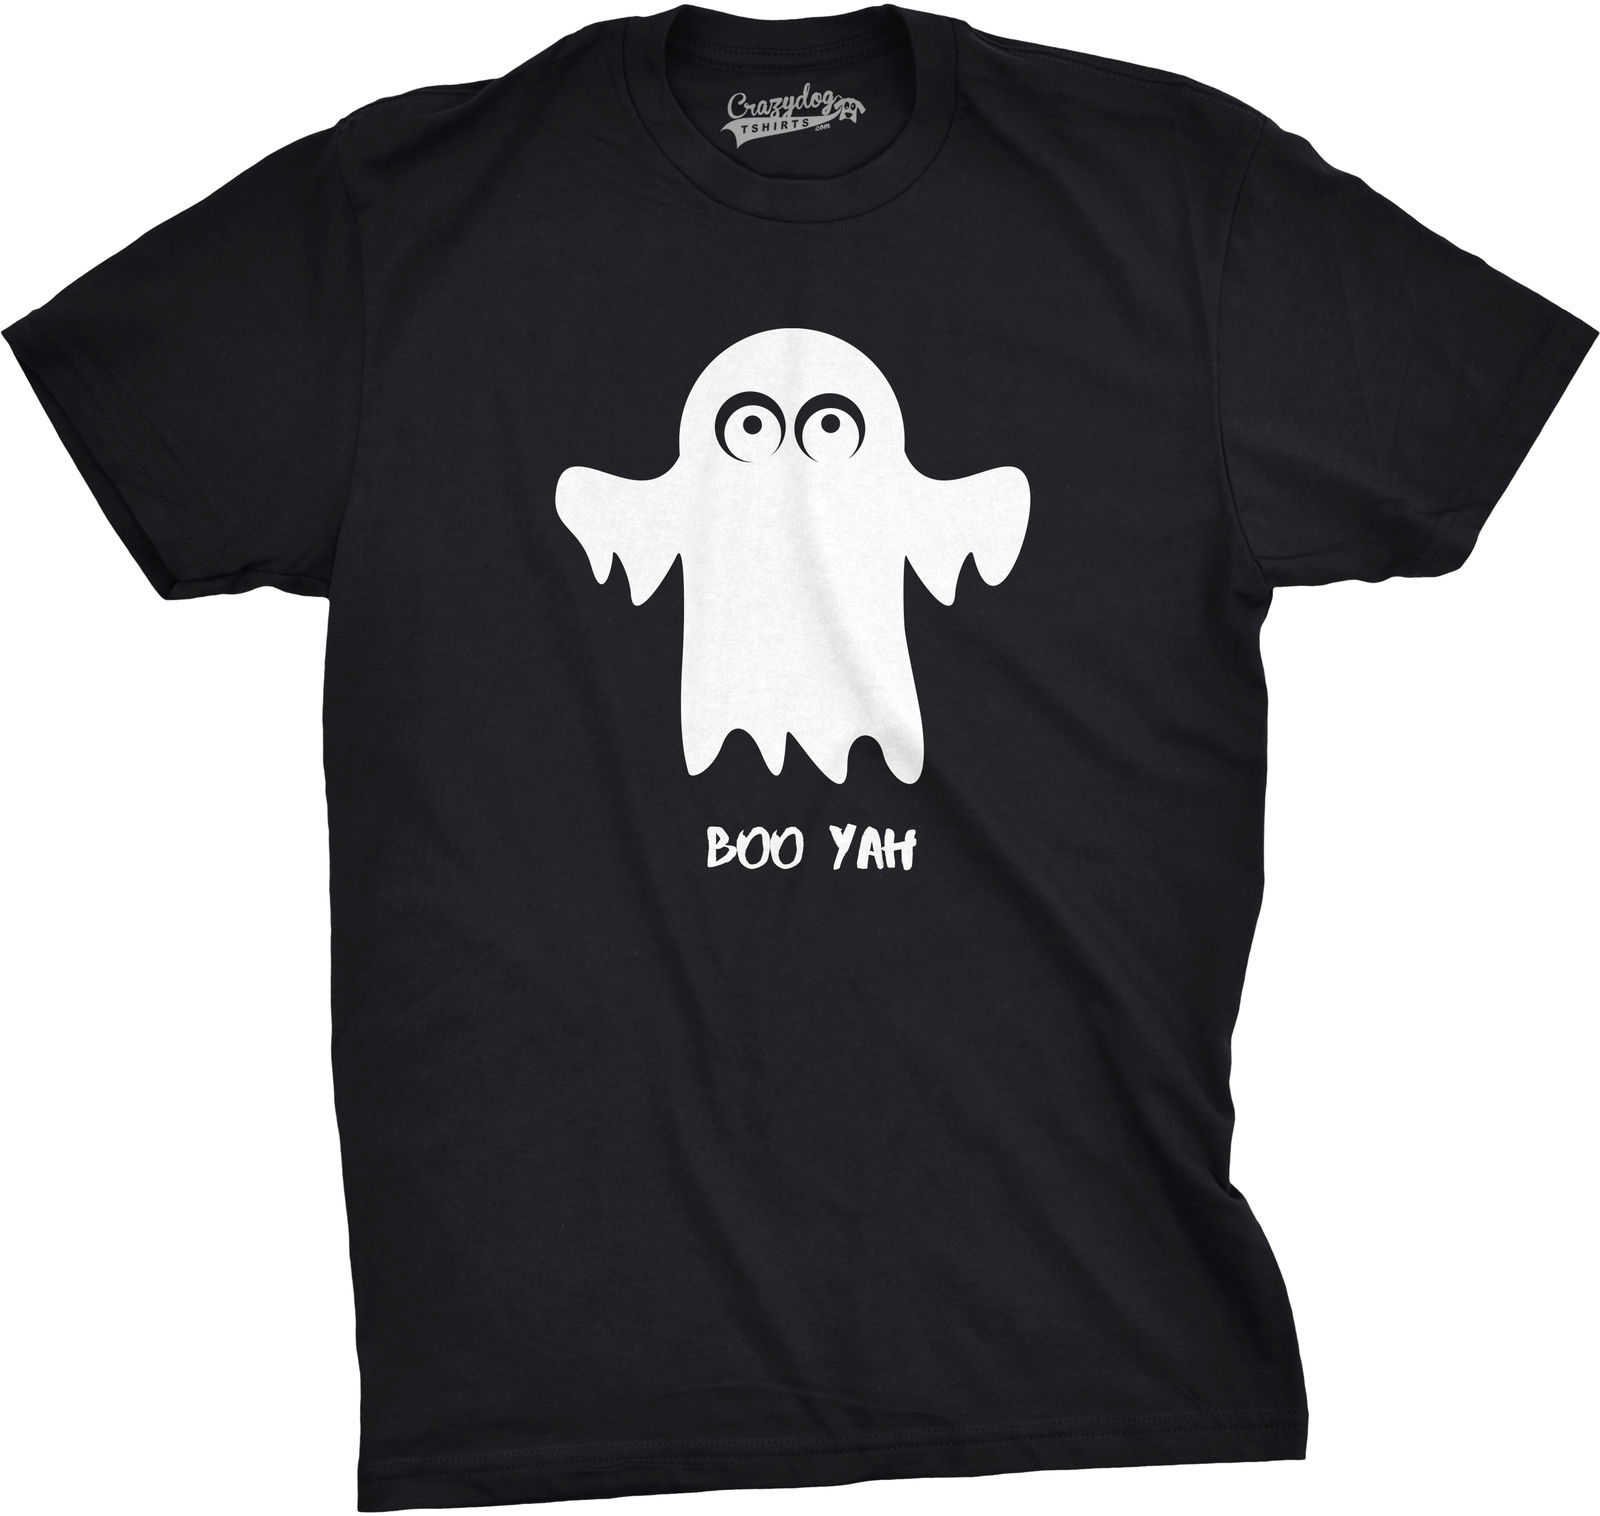 Mens Boo Yah Funny Spooky Cute Halloween October Fall Ghost T shirt Harajuku Tops t Fashion Classic Unique free shipping